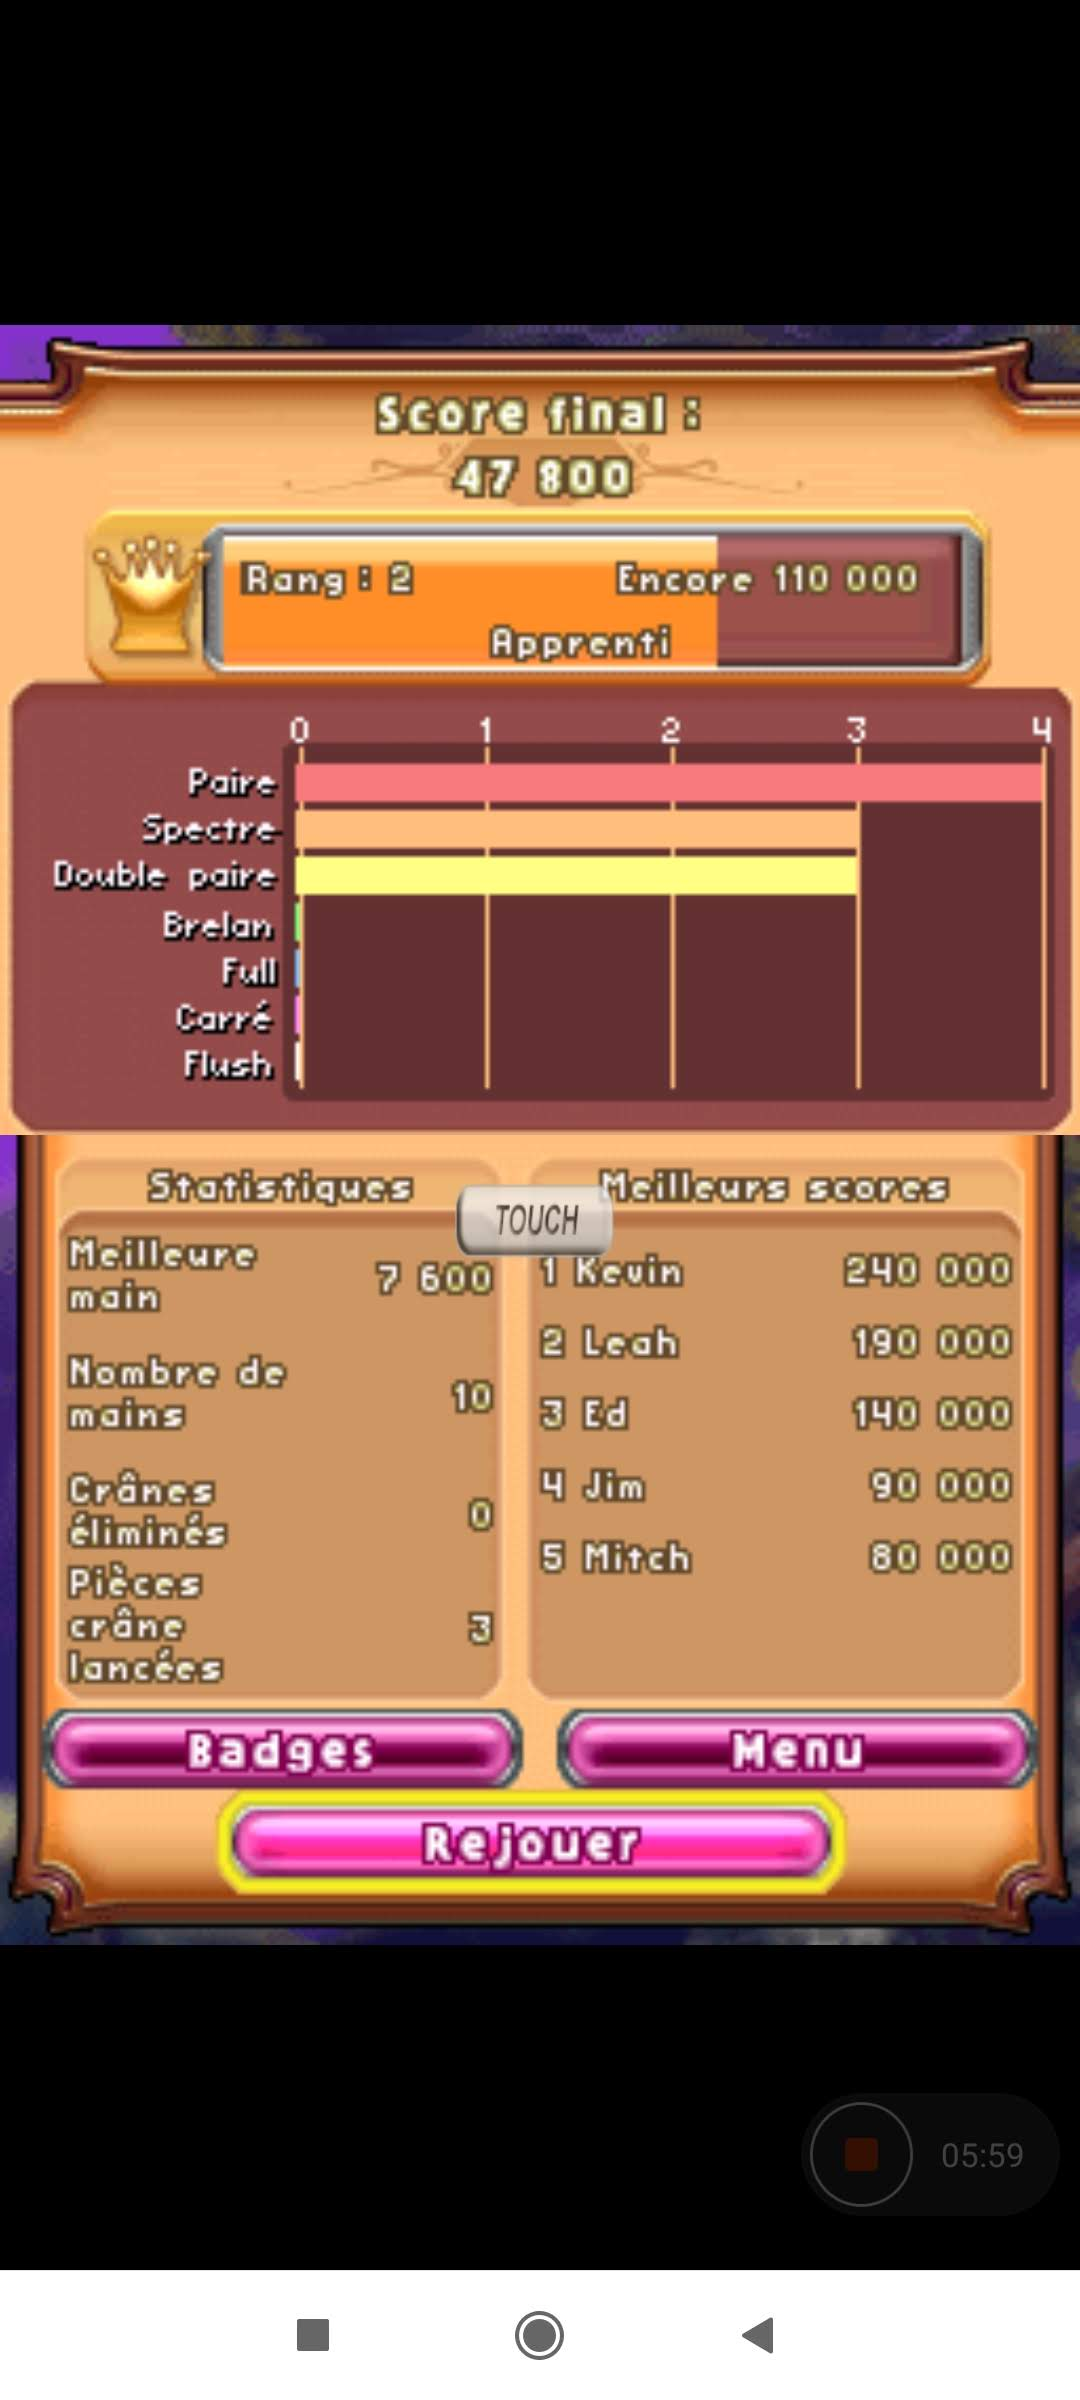 Larquey: Bejeweled 3: Poker [Best Hand] (Nintendo DS Emulated) 7,600 points on 2020-09-26 03:13:52